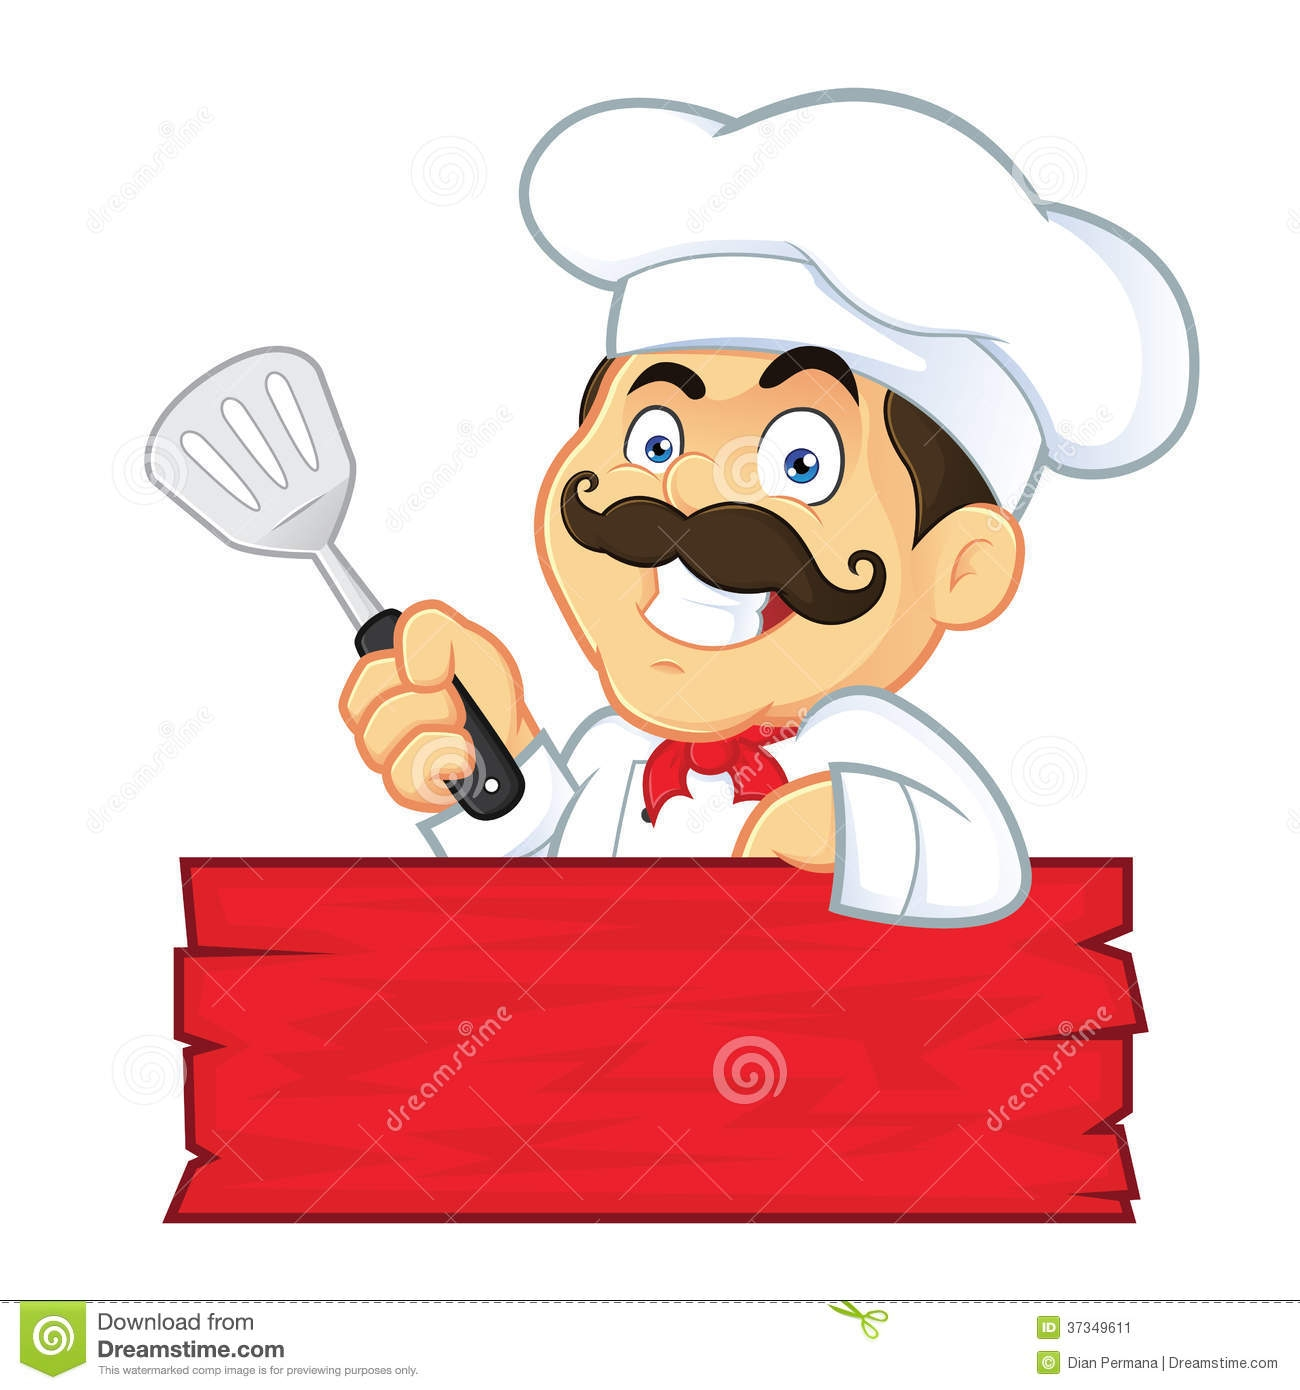 Chef clipart png transparent stock Chef clipart images - ClipartFest png transparent stock